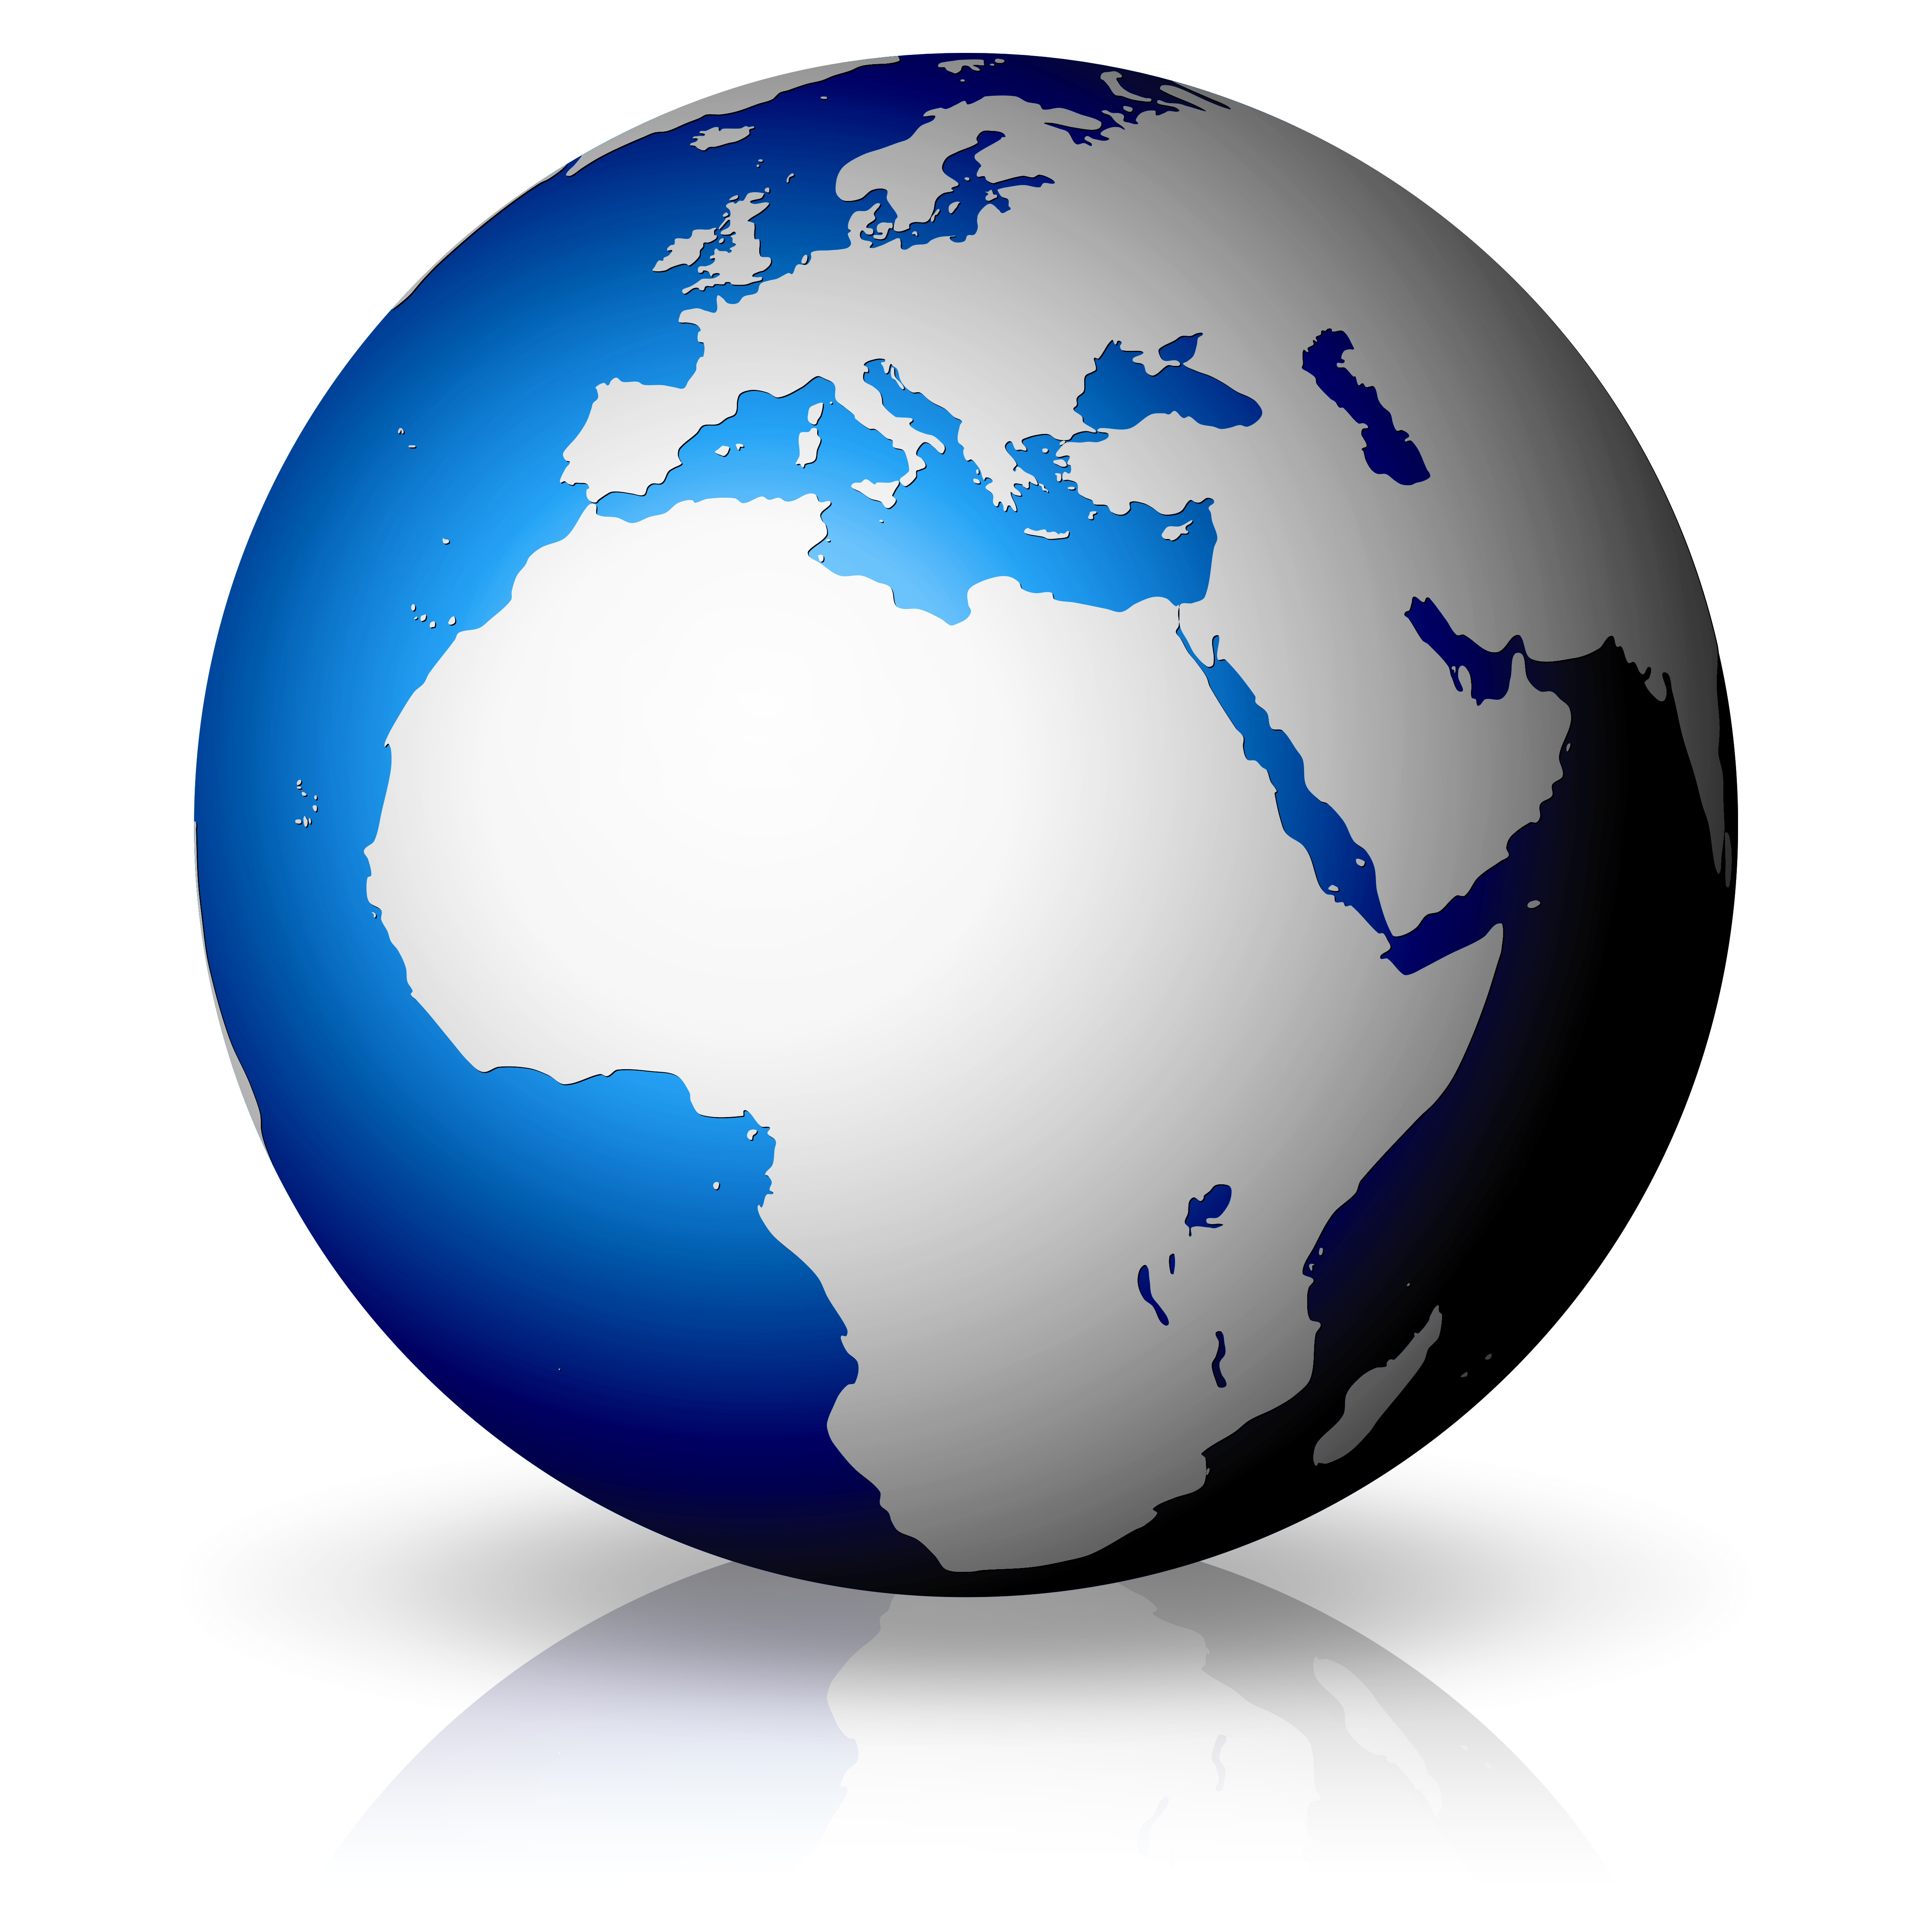 Free Global World Cliparts, Download Free Clip Art, Free.